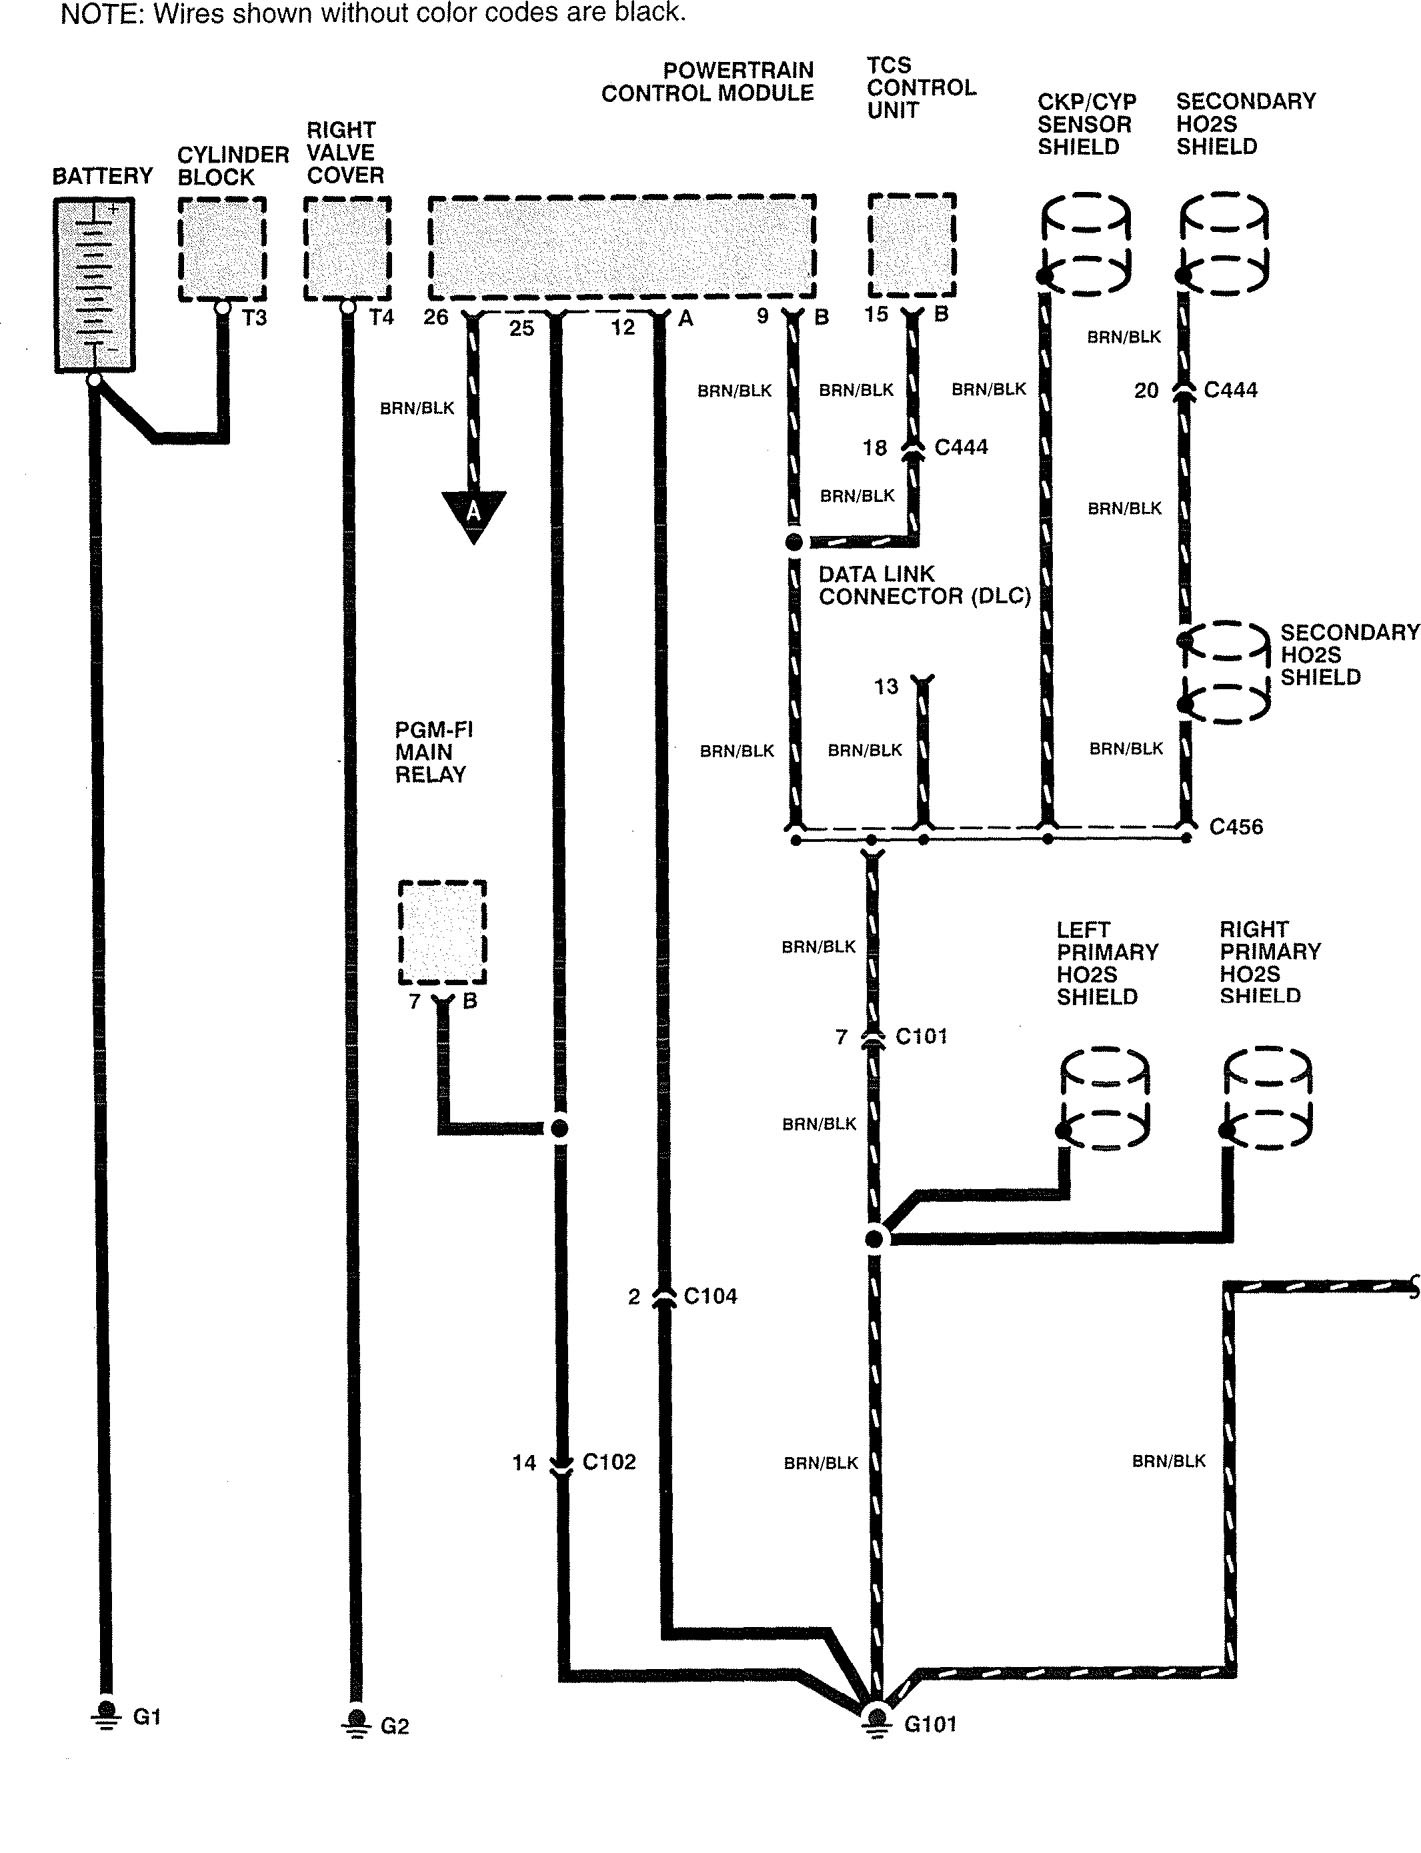 integra wiring diagram wiring diagram detailed rh 6 tonbefuo pfefferkorn bremerhaven de